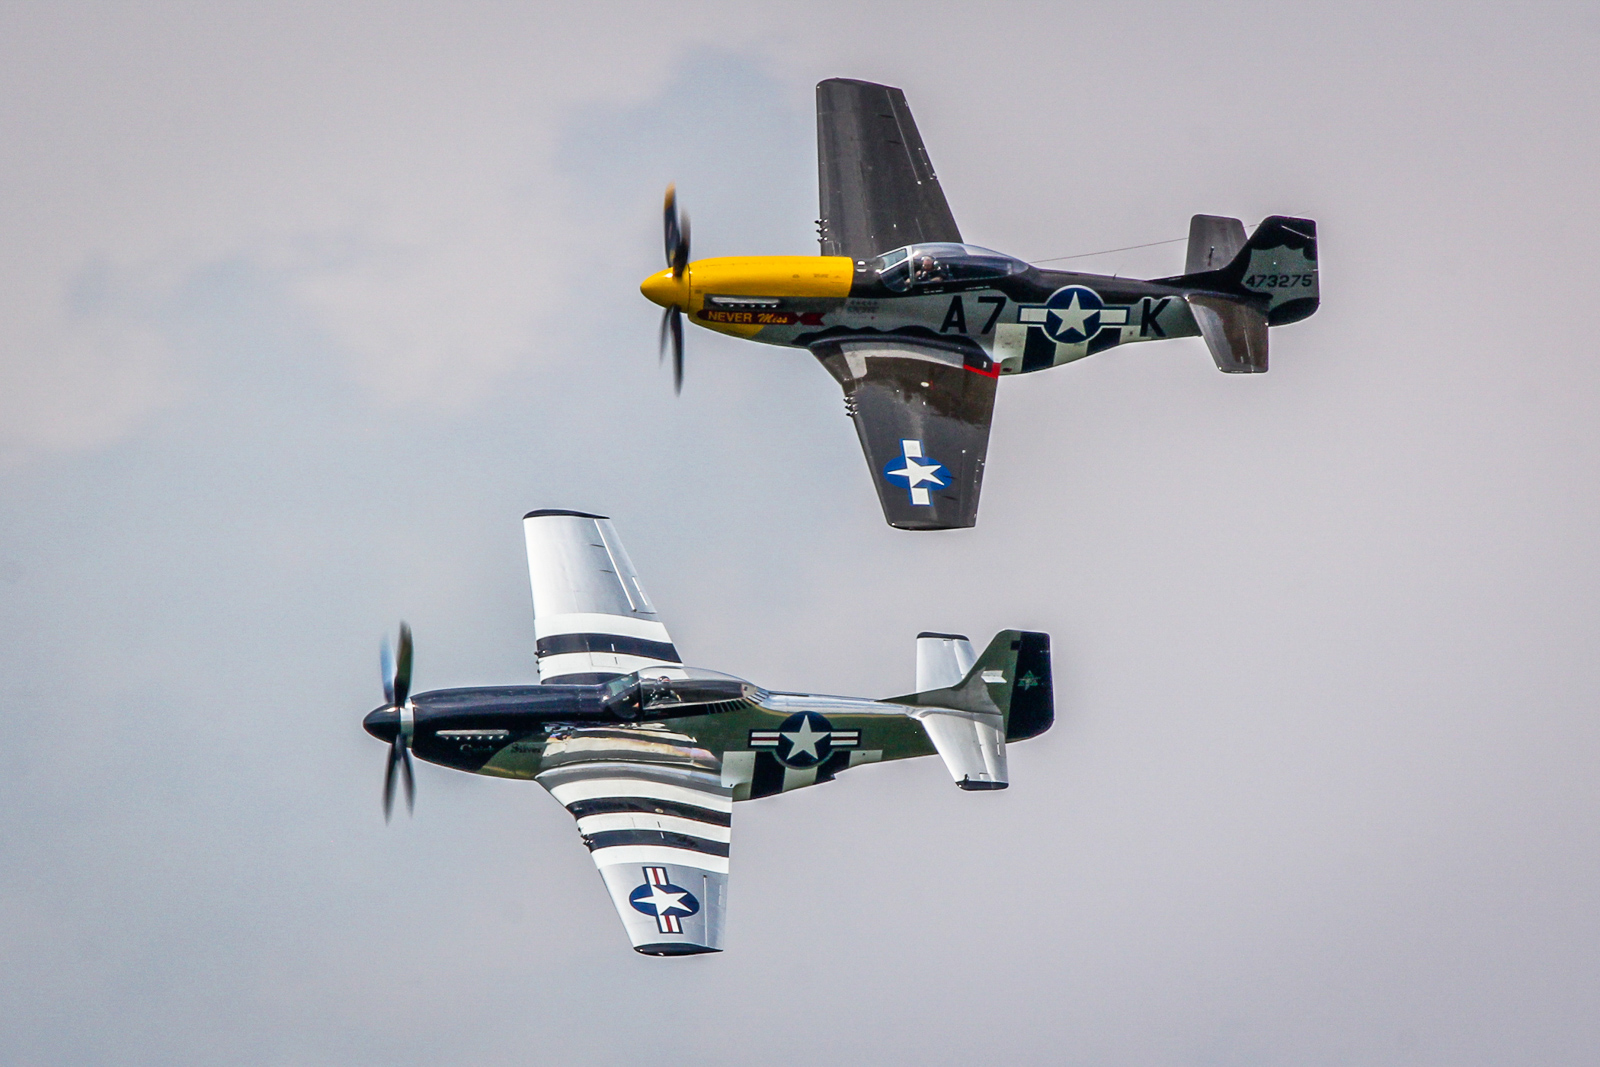 Two of the P-51D Mustangs in attendance included Mark Murphy in 'Never Miss' and Scott Yoak in 'Quick Silver'. (photo by Tom Pawlesh)